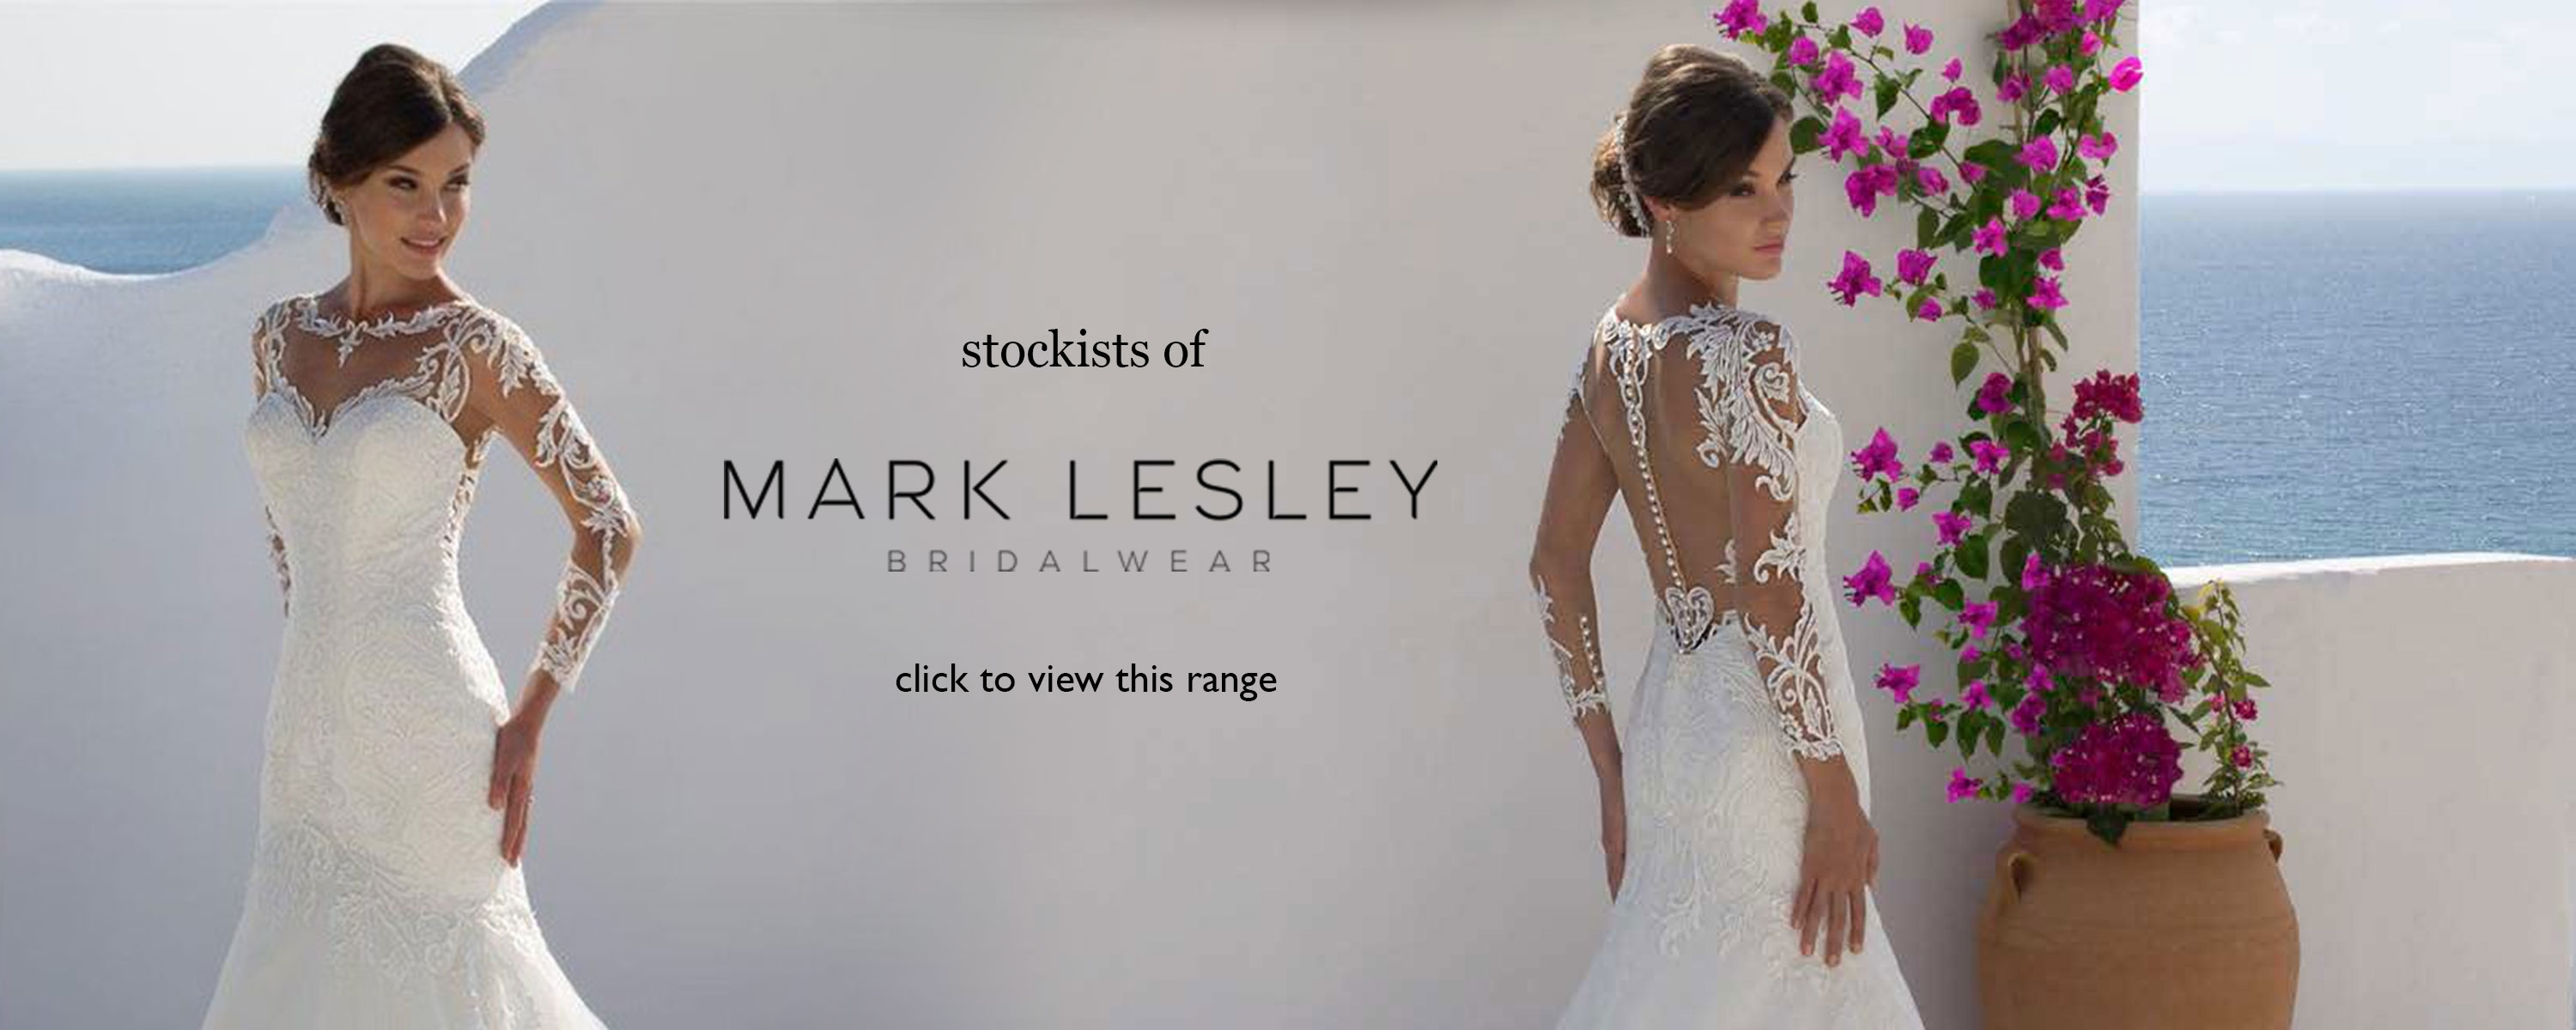 Mark Lesley Stockists Sutton Coldfield